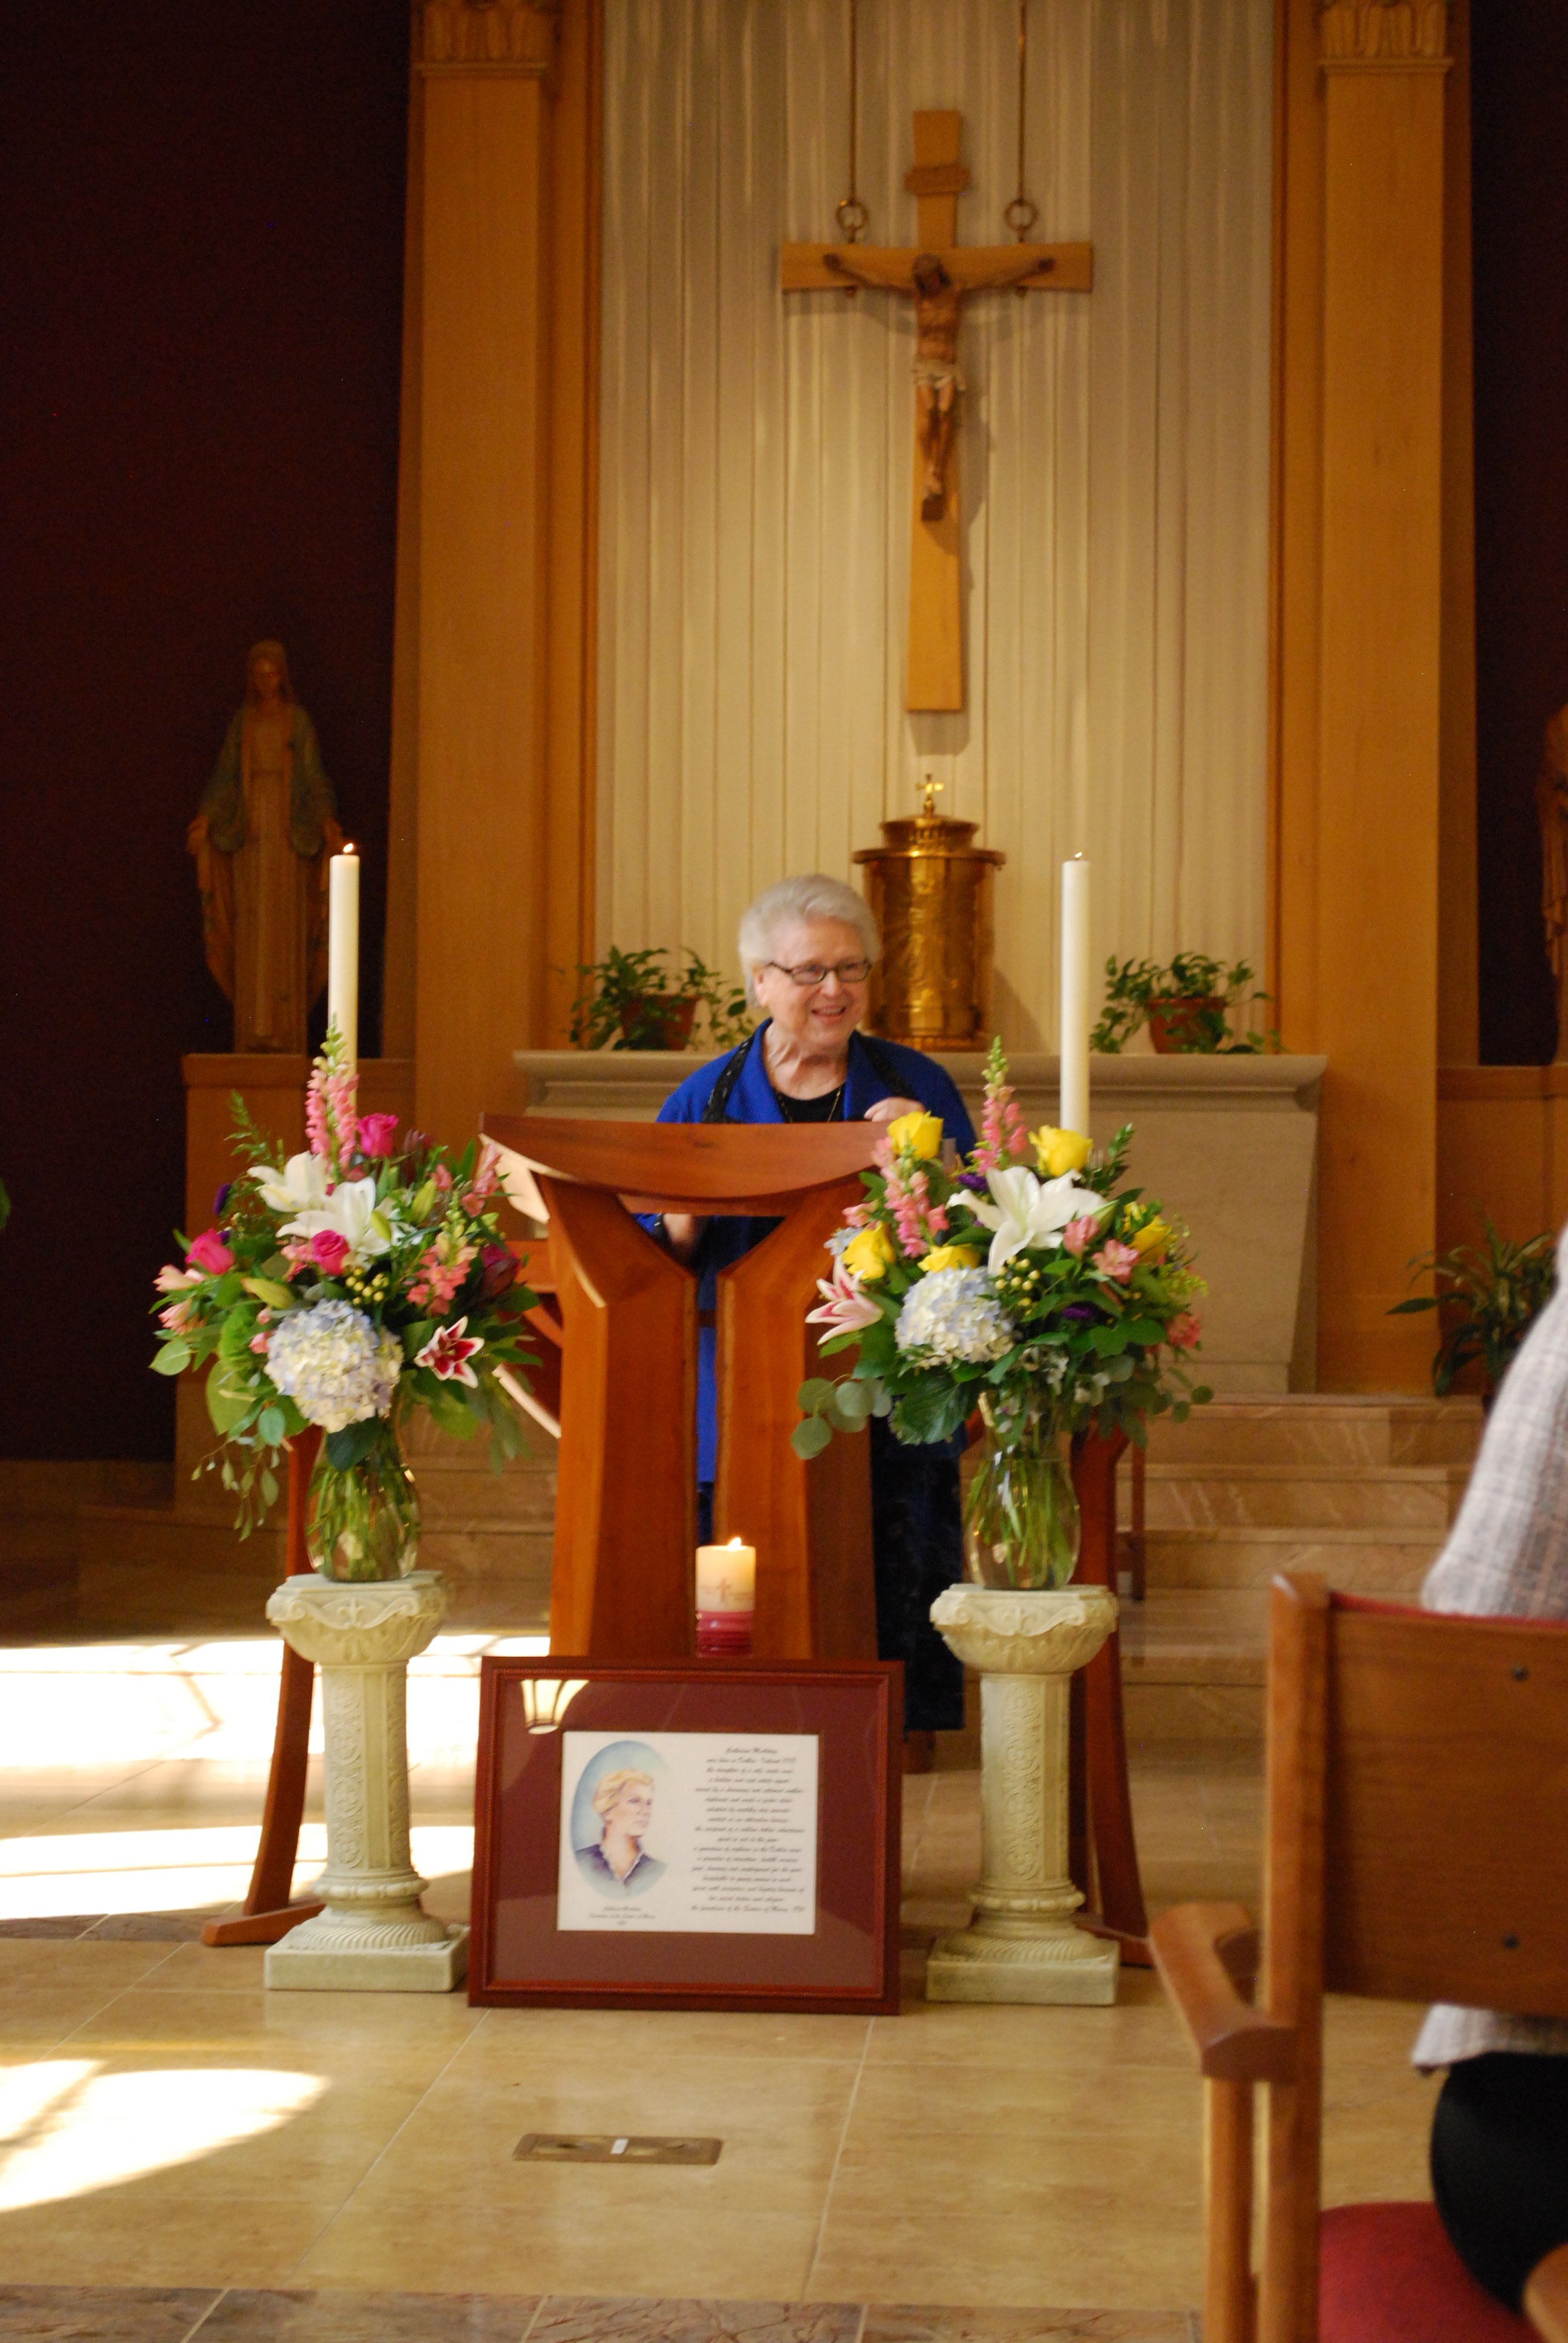 Sister Madonna in the chapel